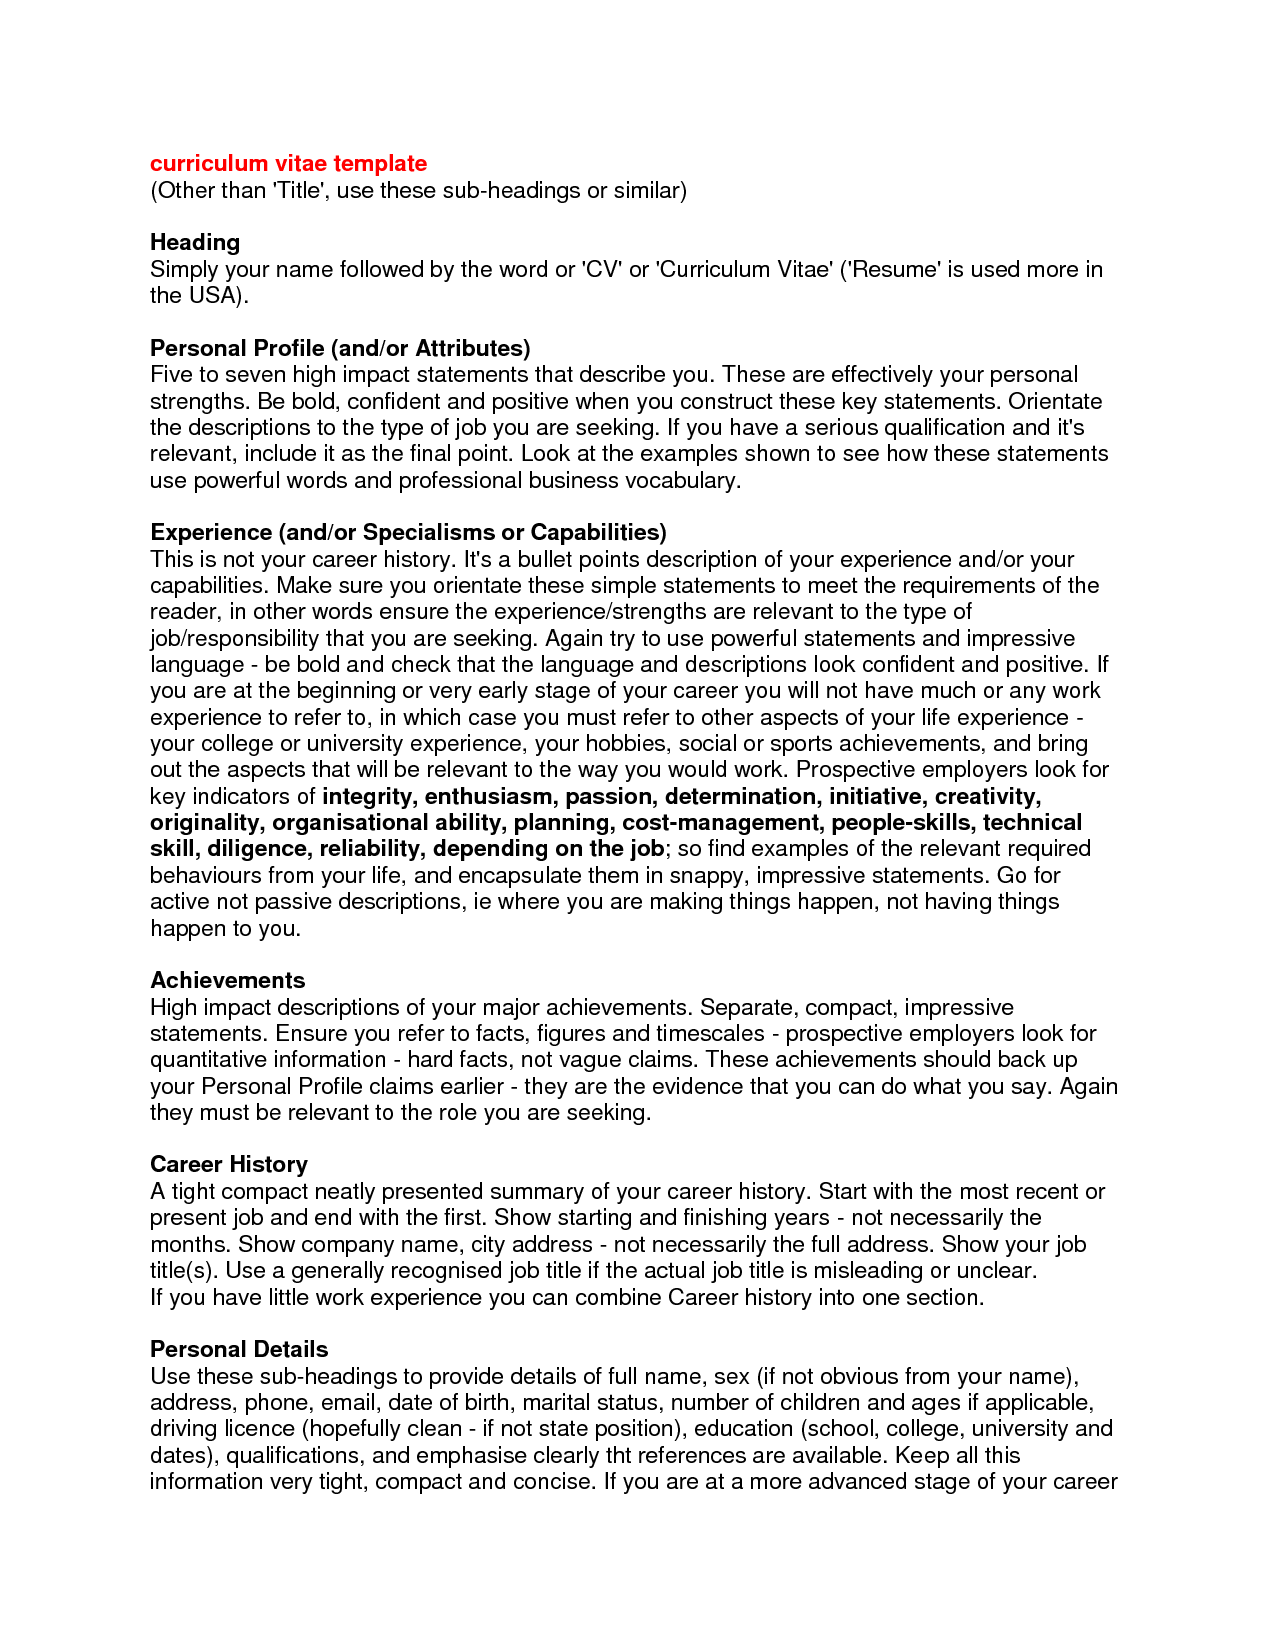 curriculum vitae personal statement samples     resumecareer info  curriculum